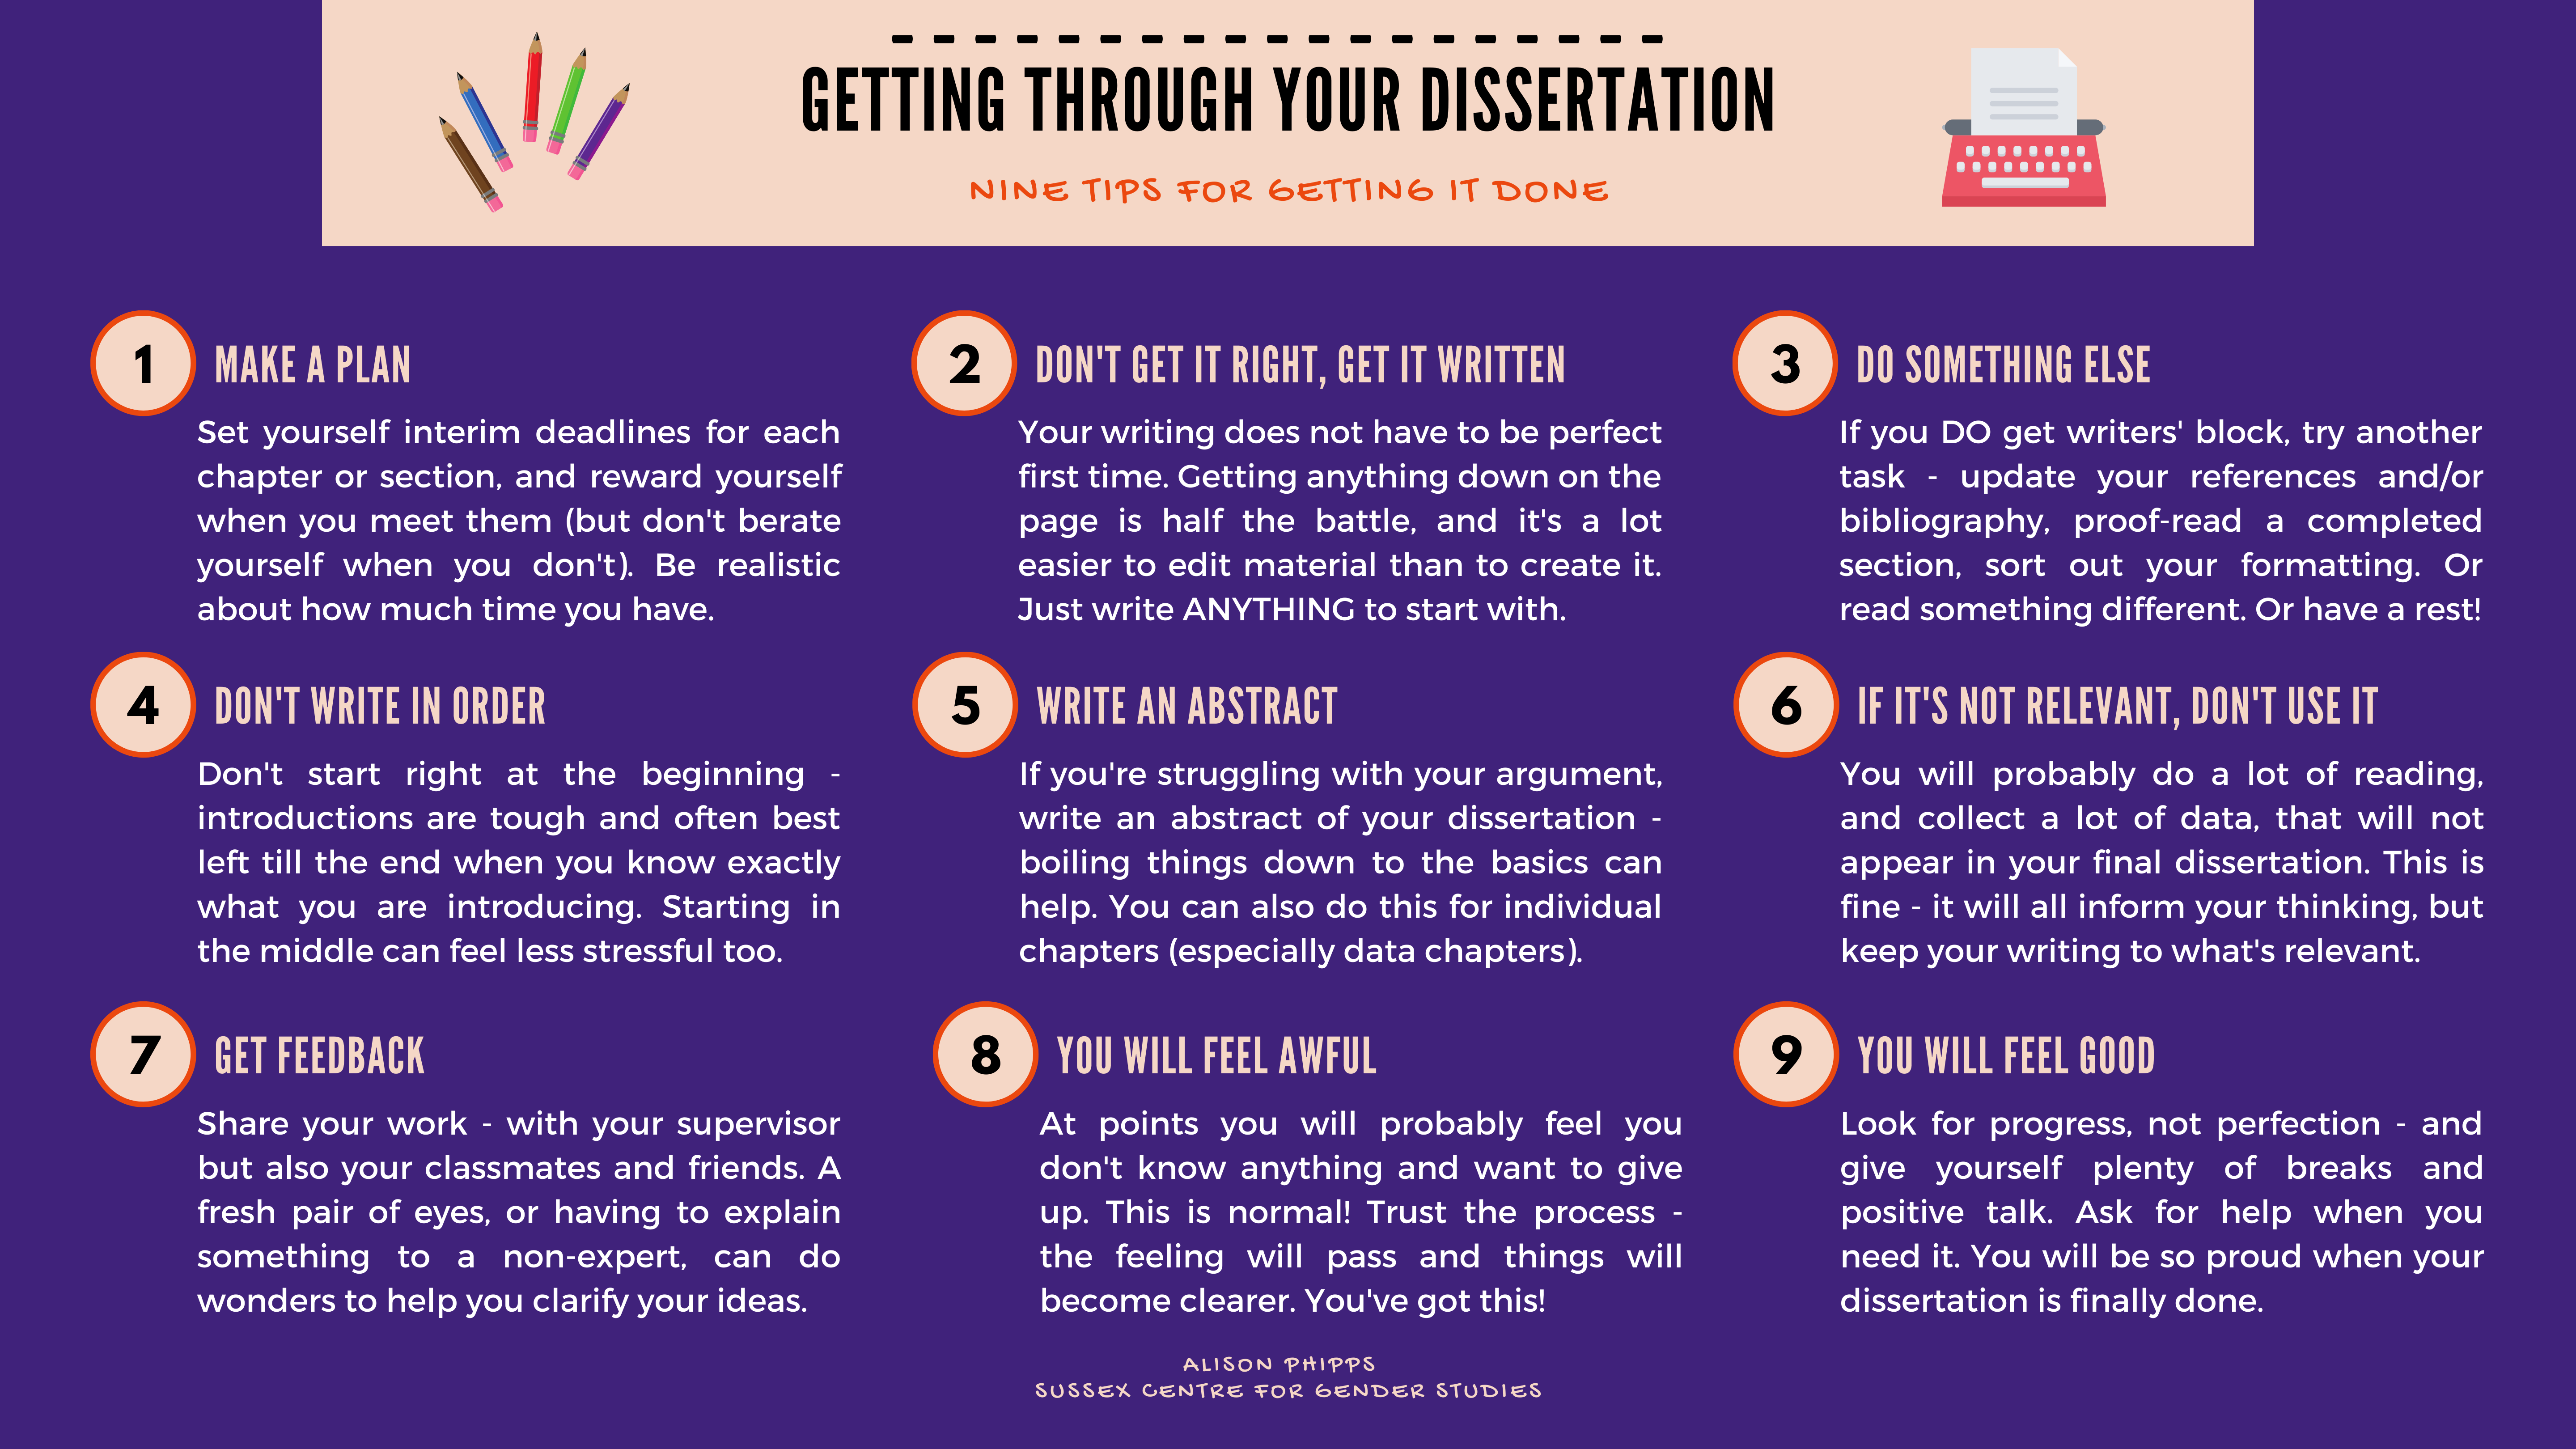 Getting through your dissertation: Nine tips for getting it done. Tips presented in infographic form on a blue background. For a text version, please see link under the image.